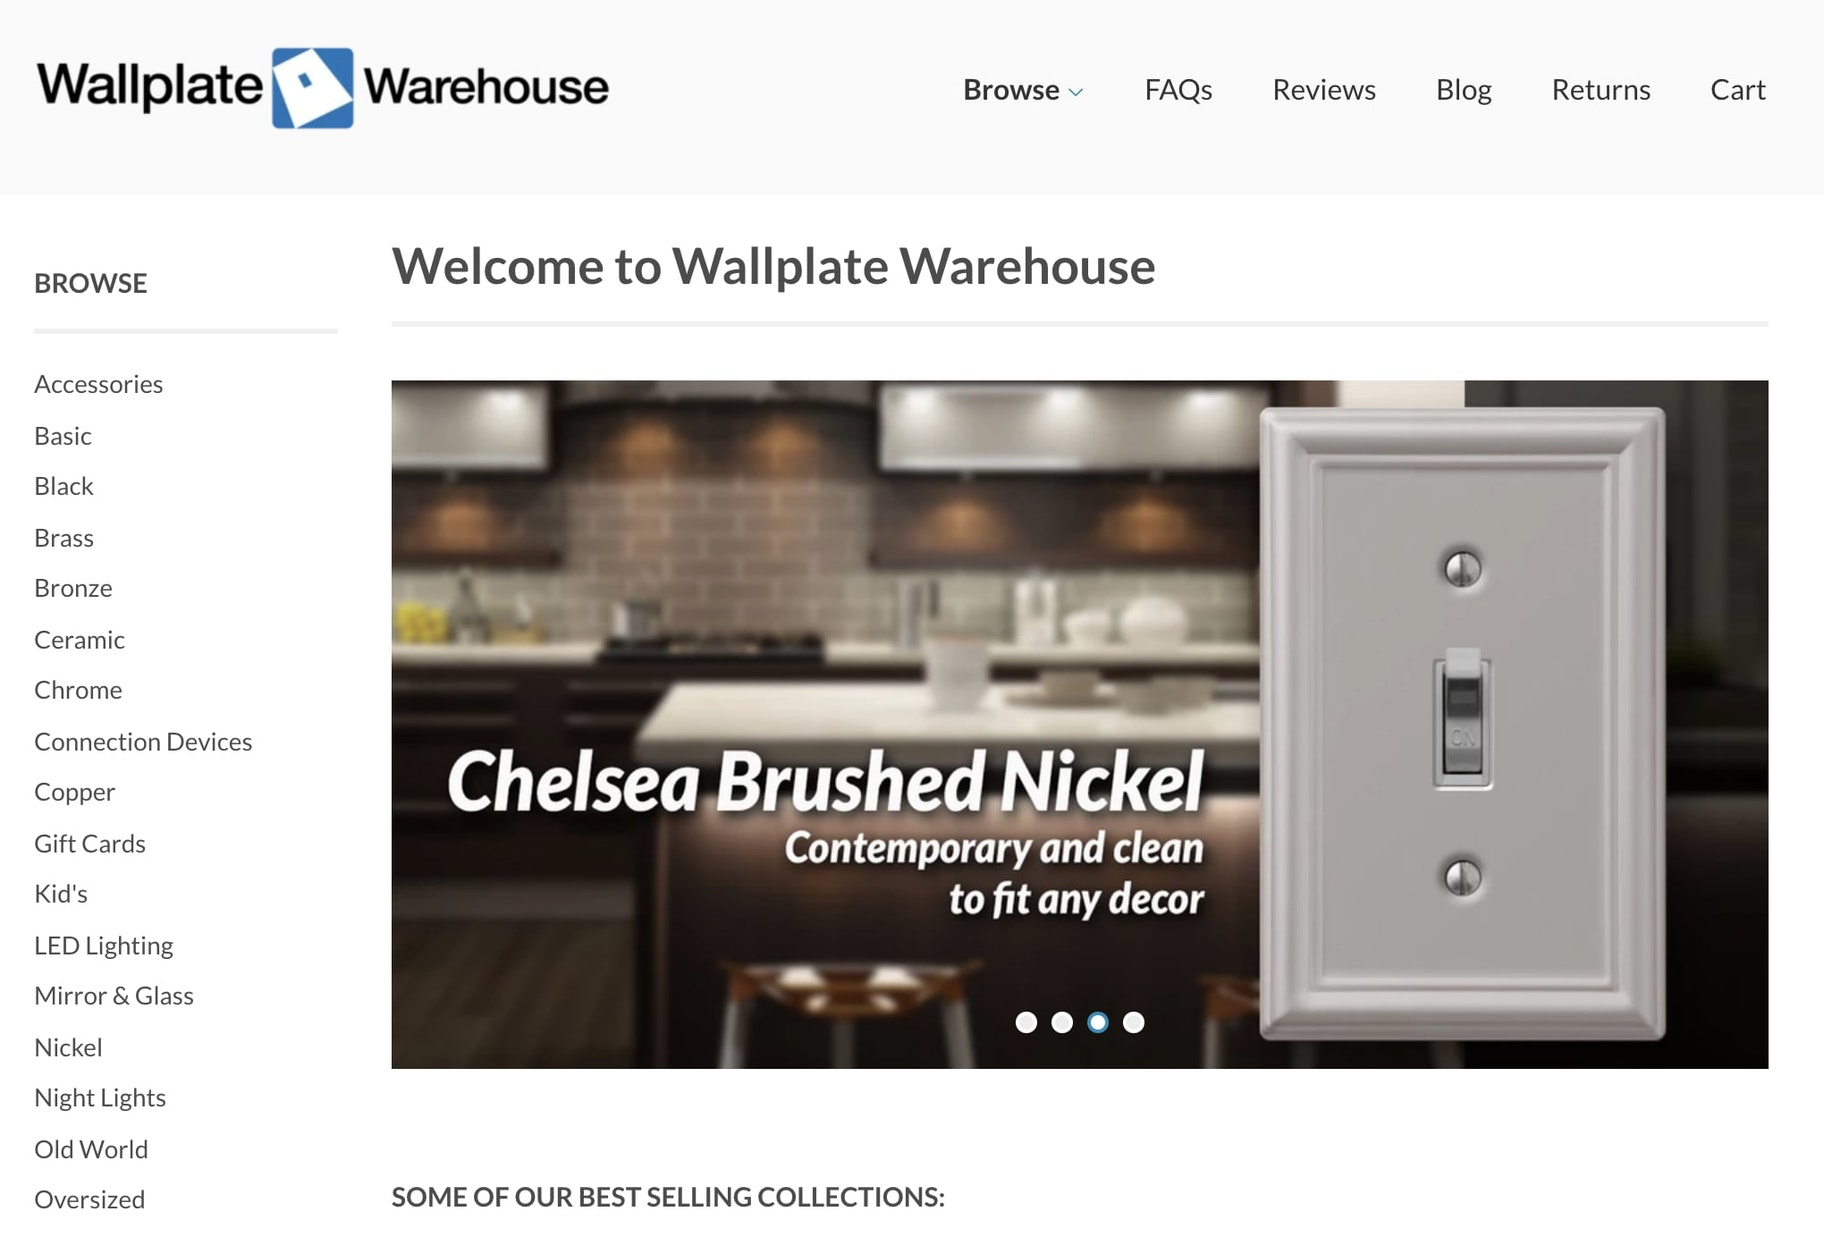 Screenshot of the Wallplate Warehouse home page